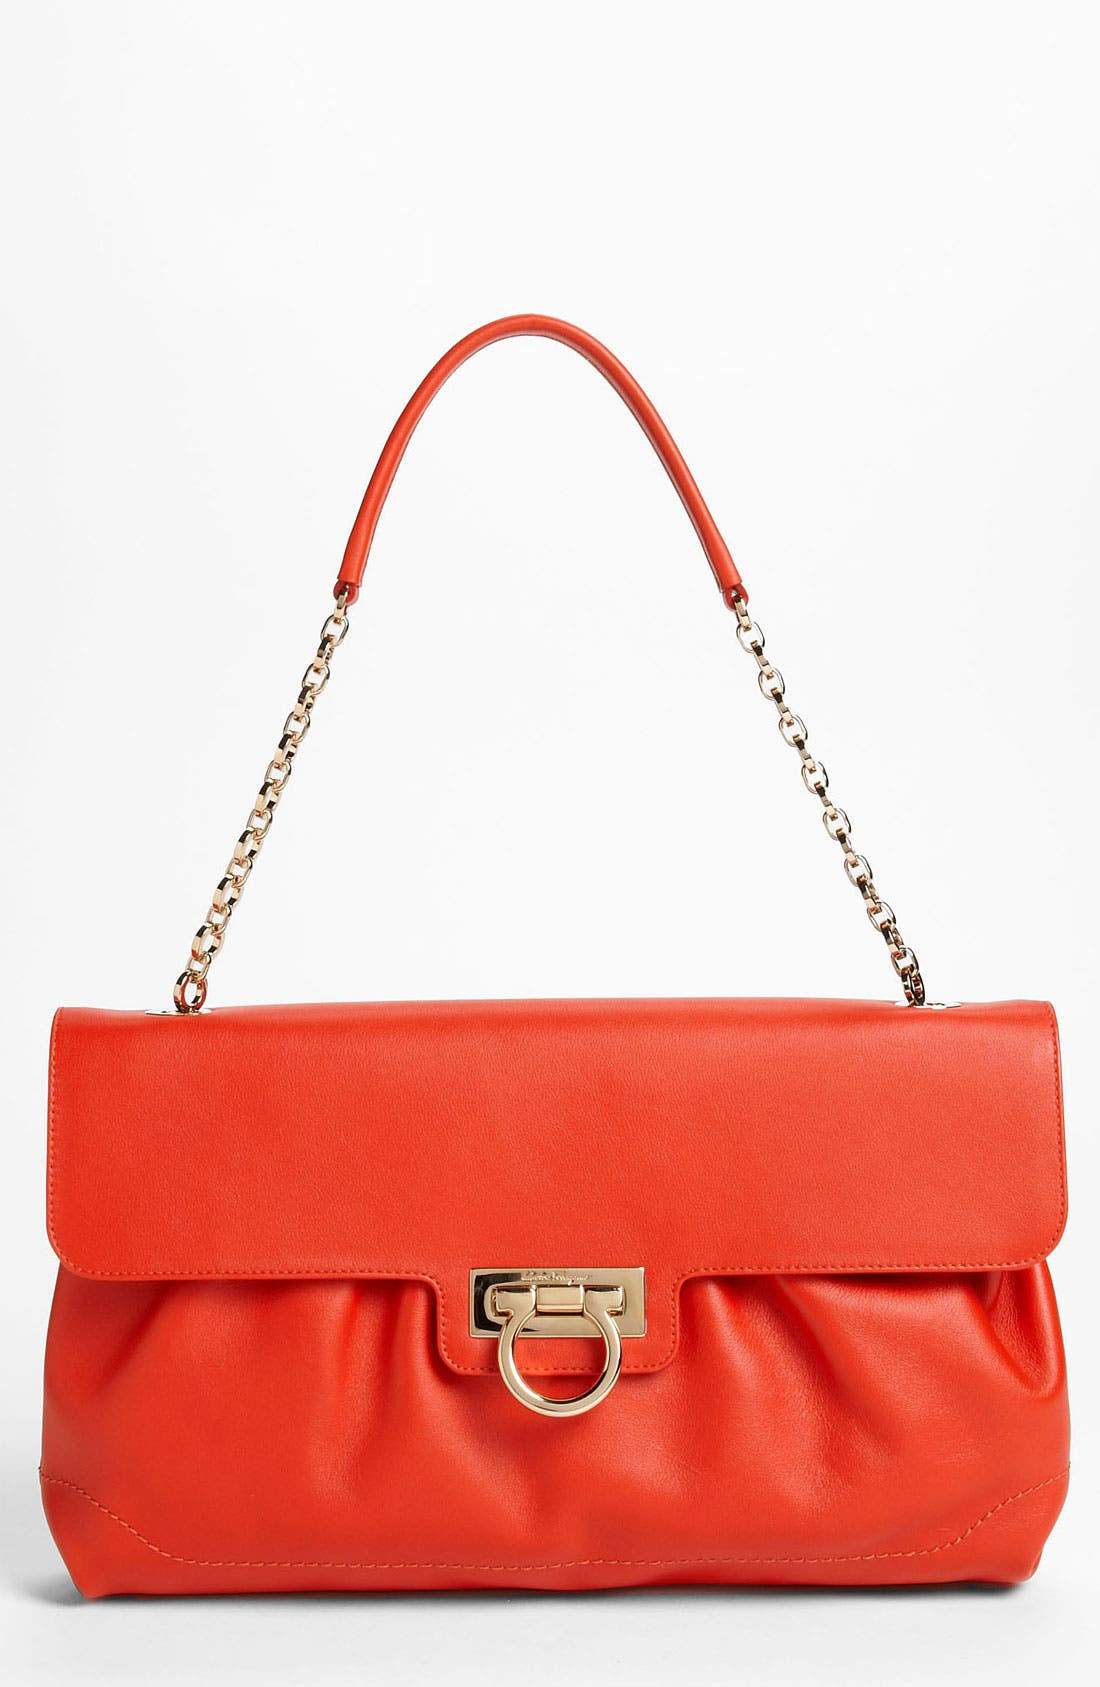 Main Image - Salvatore Ferragamo Chain Strap Leather Shoulder Bag